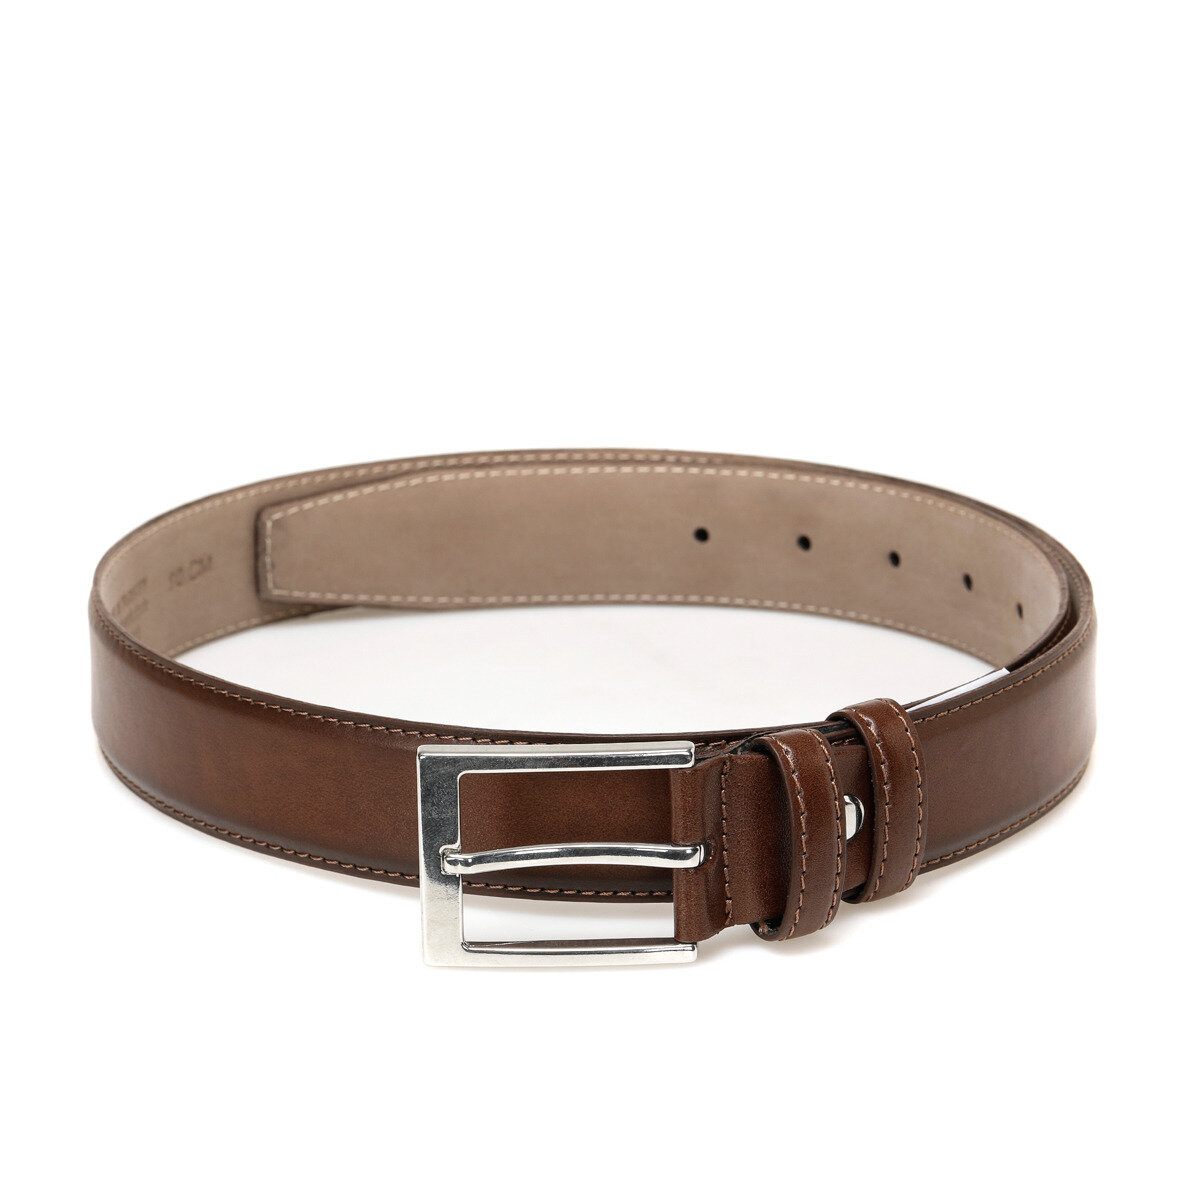 FLO 20M RS BB KHV KMR Brown Men 'S Belt Garamond